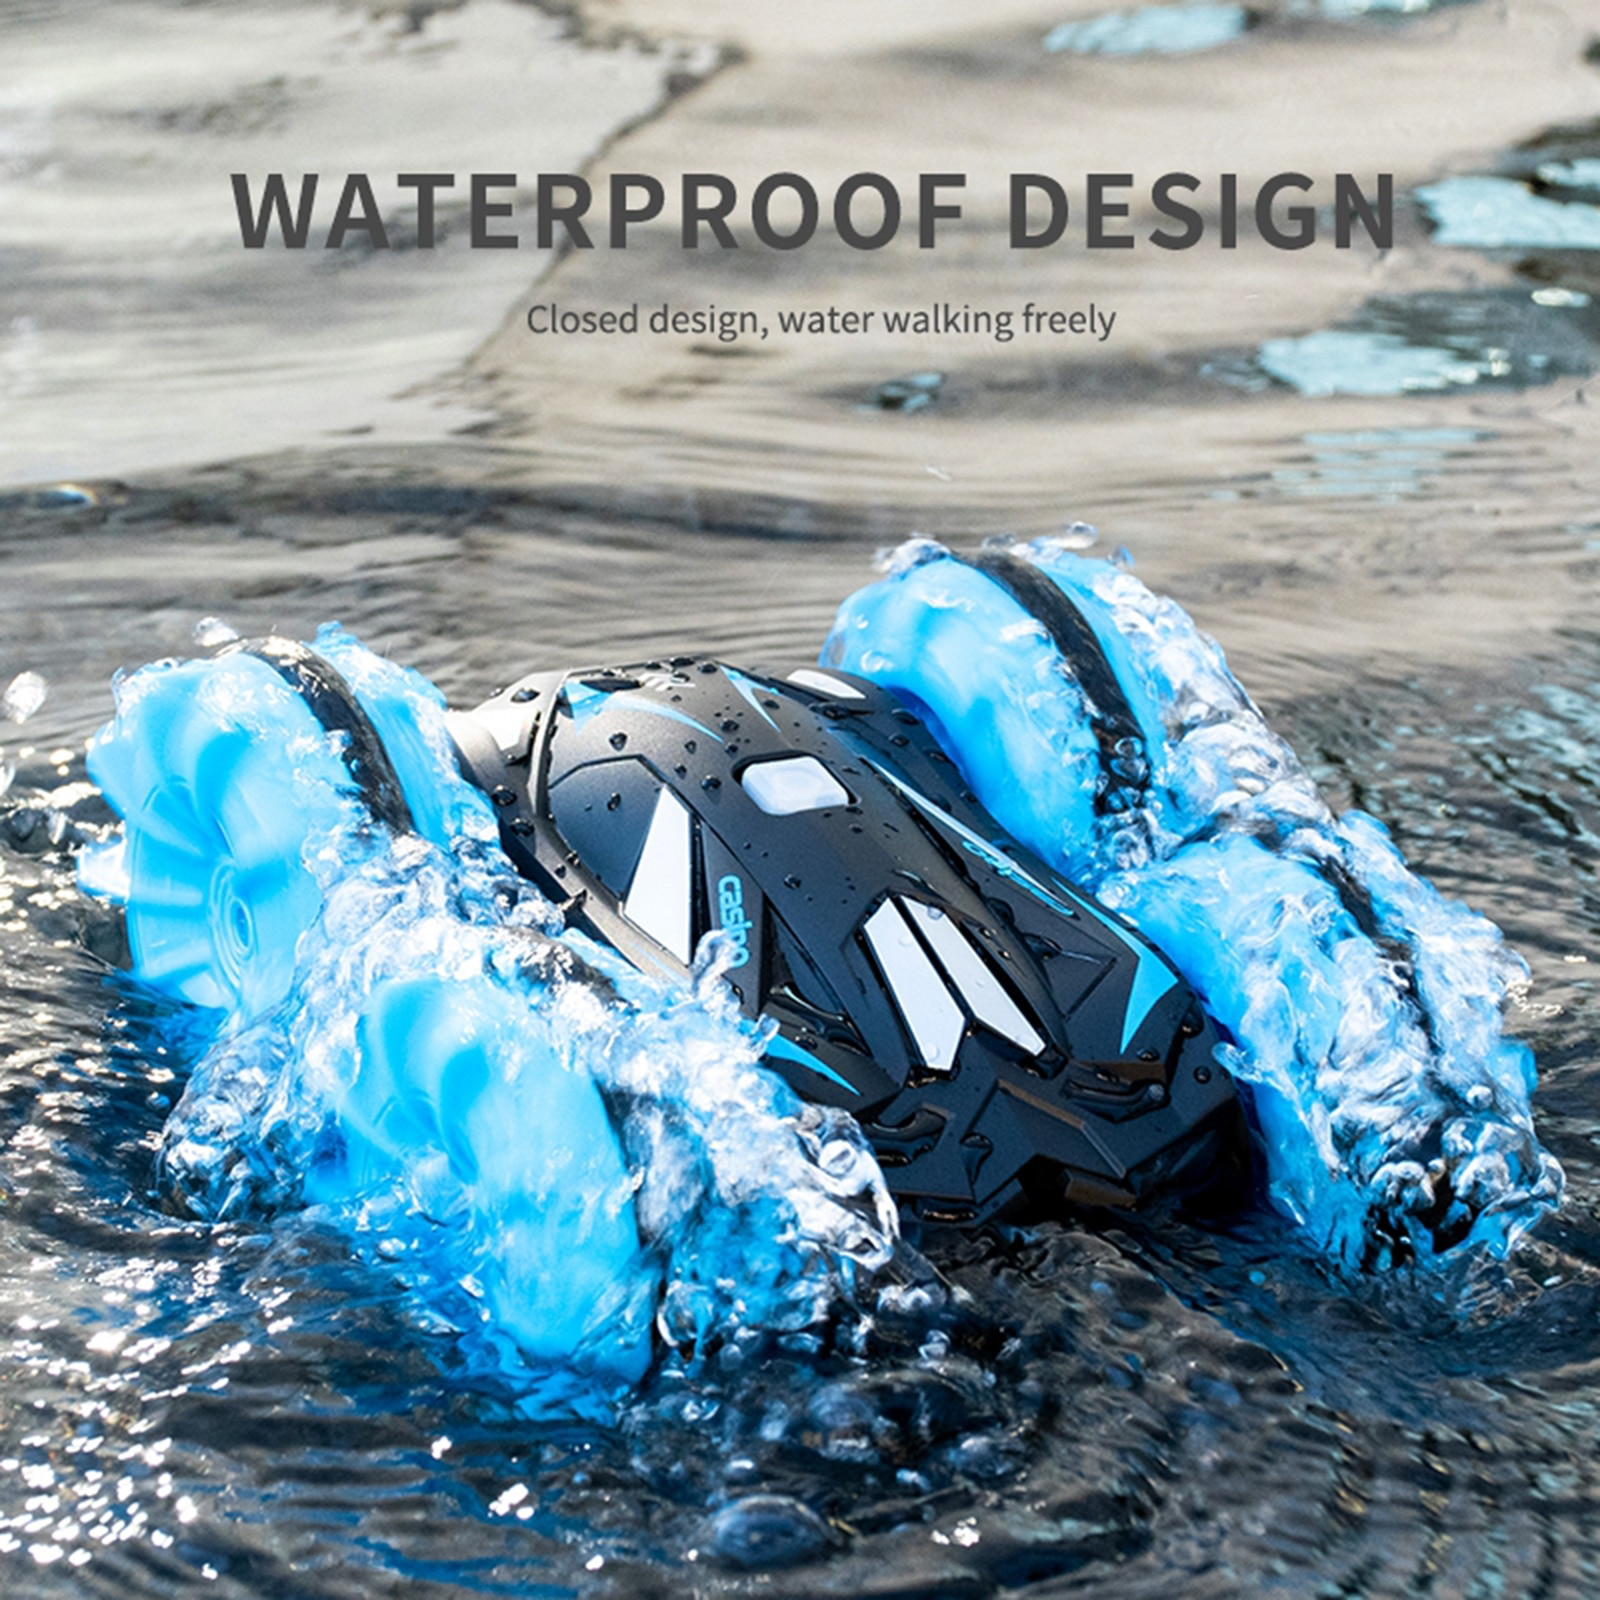 Waterproof 1/20 RC Stunt Car Racing Monster Truck Electric Radio Control On Water And Land Rechargeable 360° Rotating enlarge